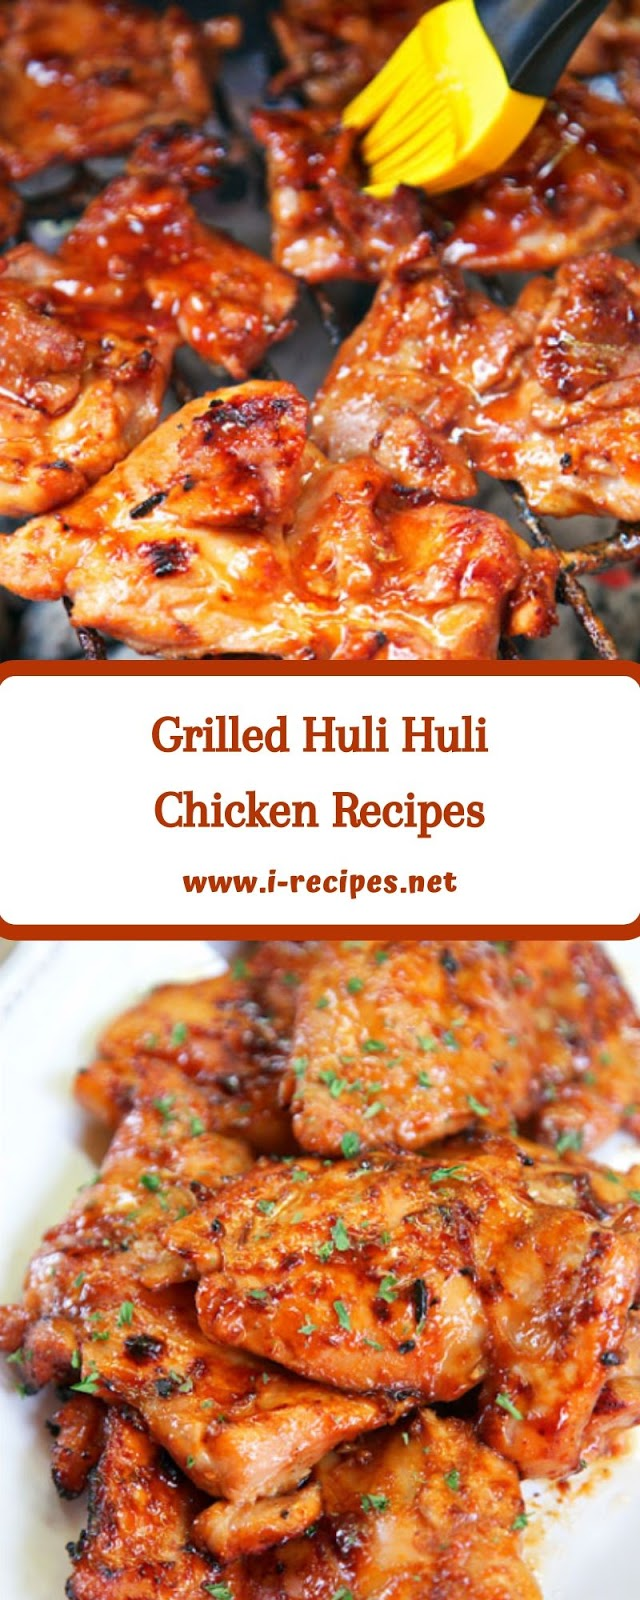 Grilled Huli Huli Chicken Recipes